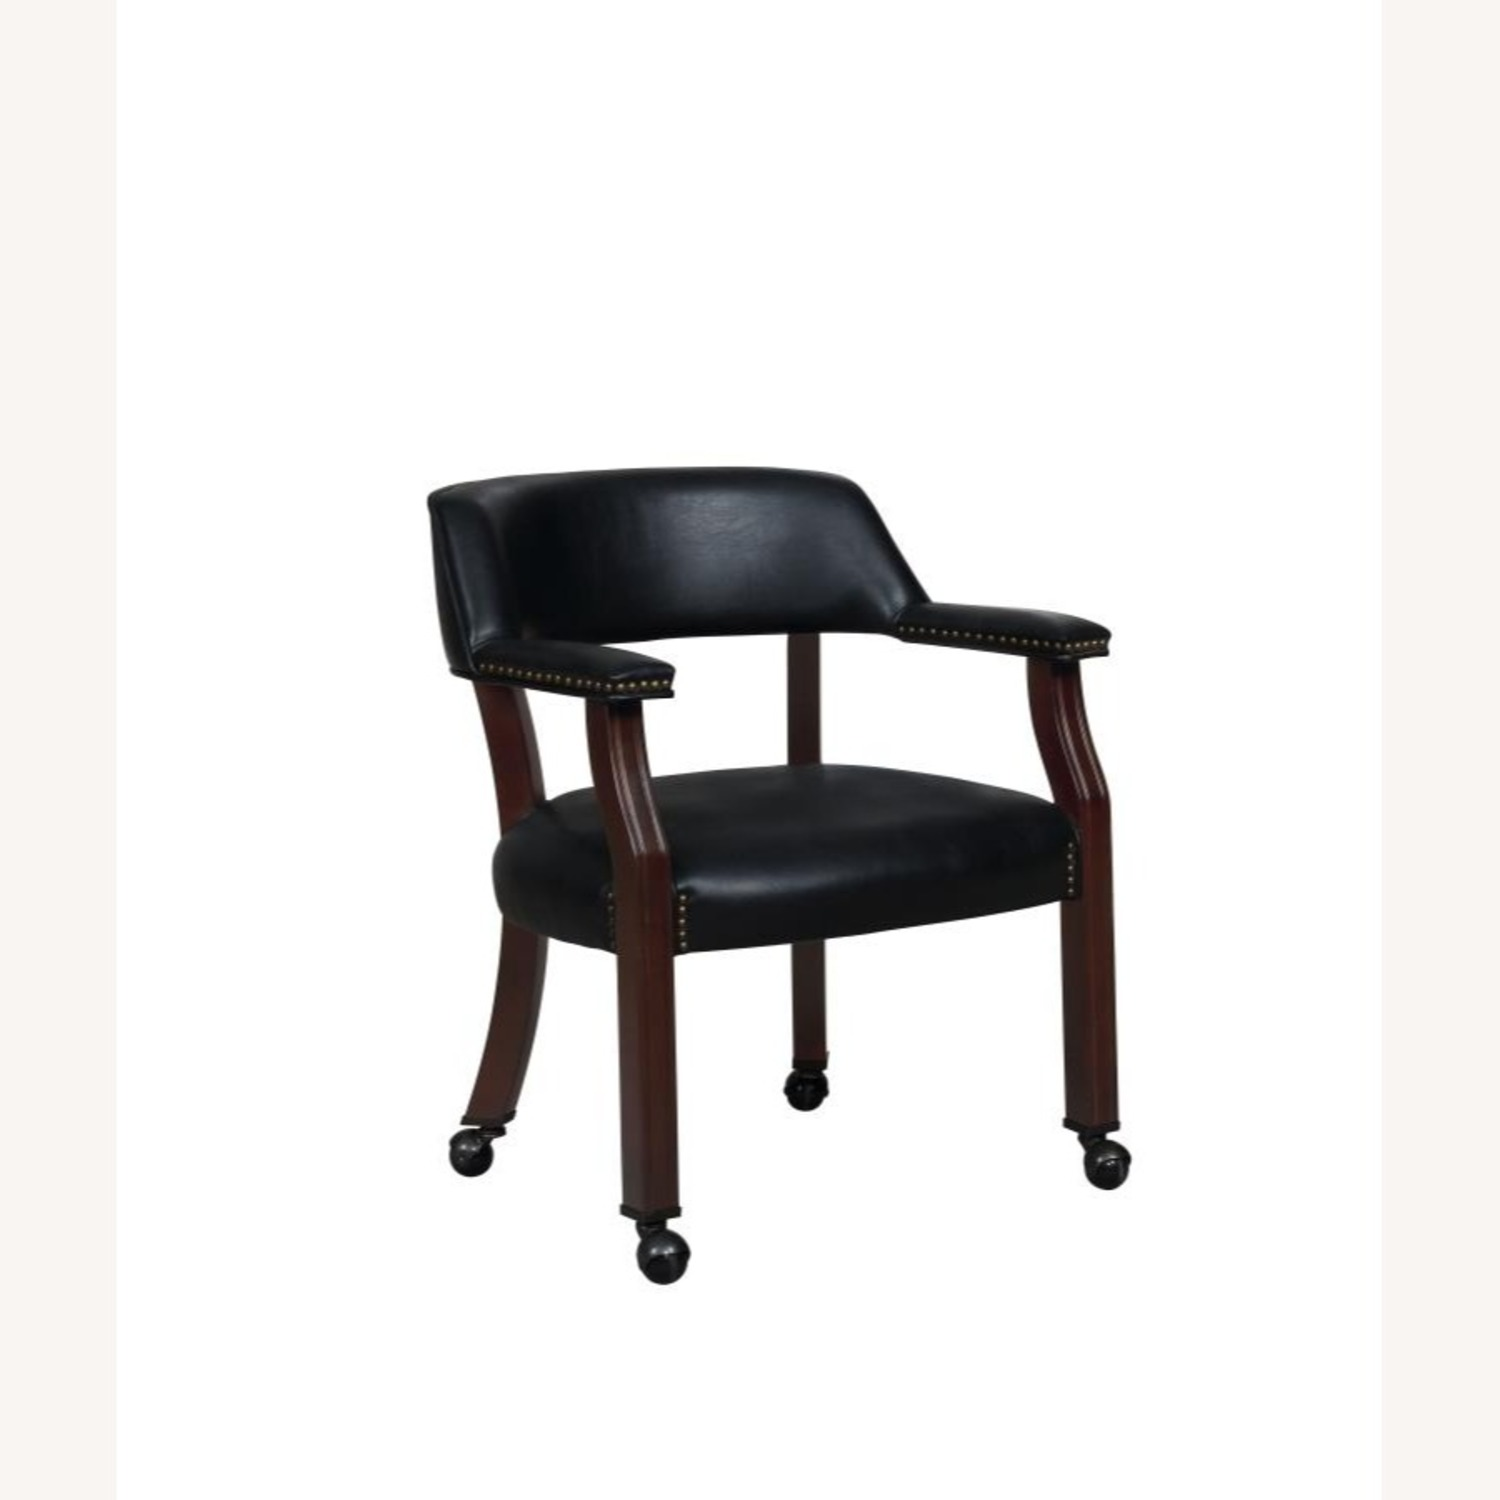 Guest Chair In Black Leatherette Upholstery - image-0